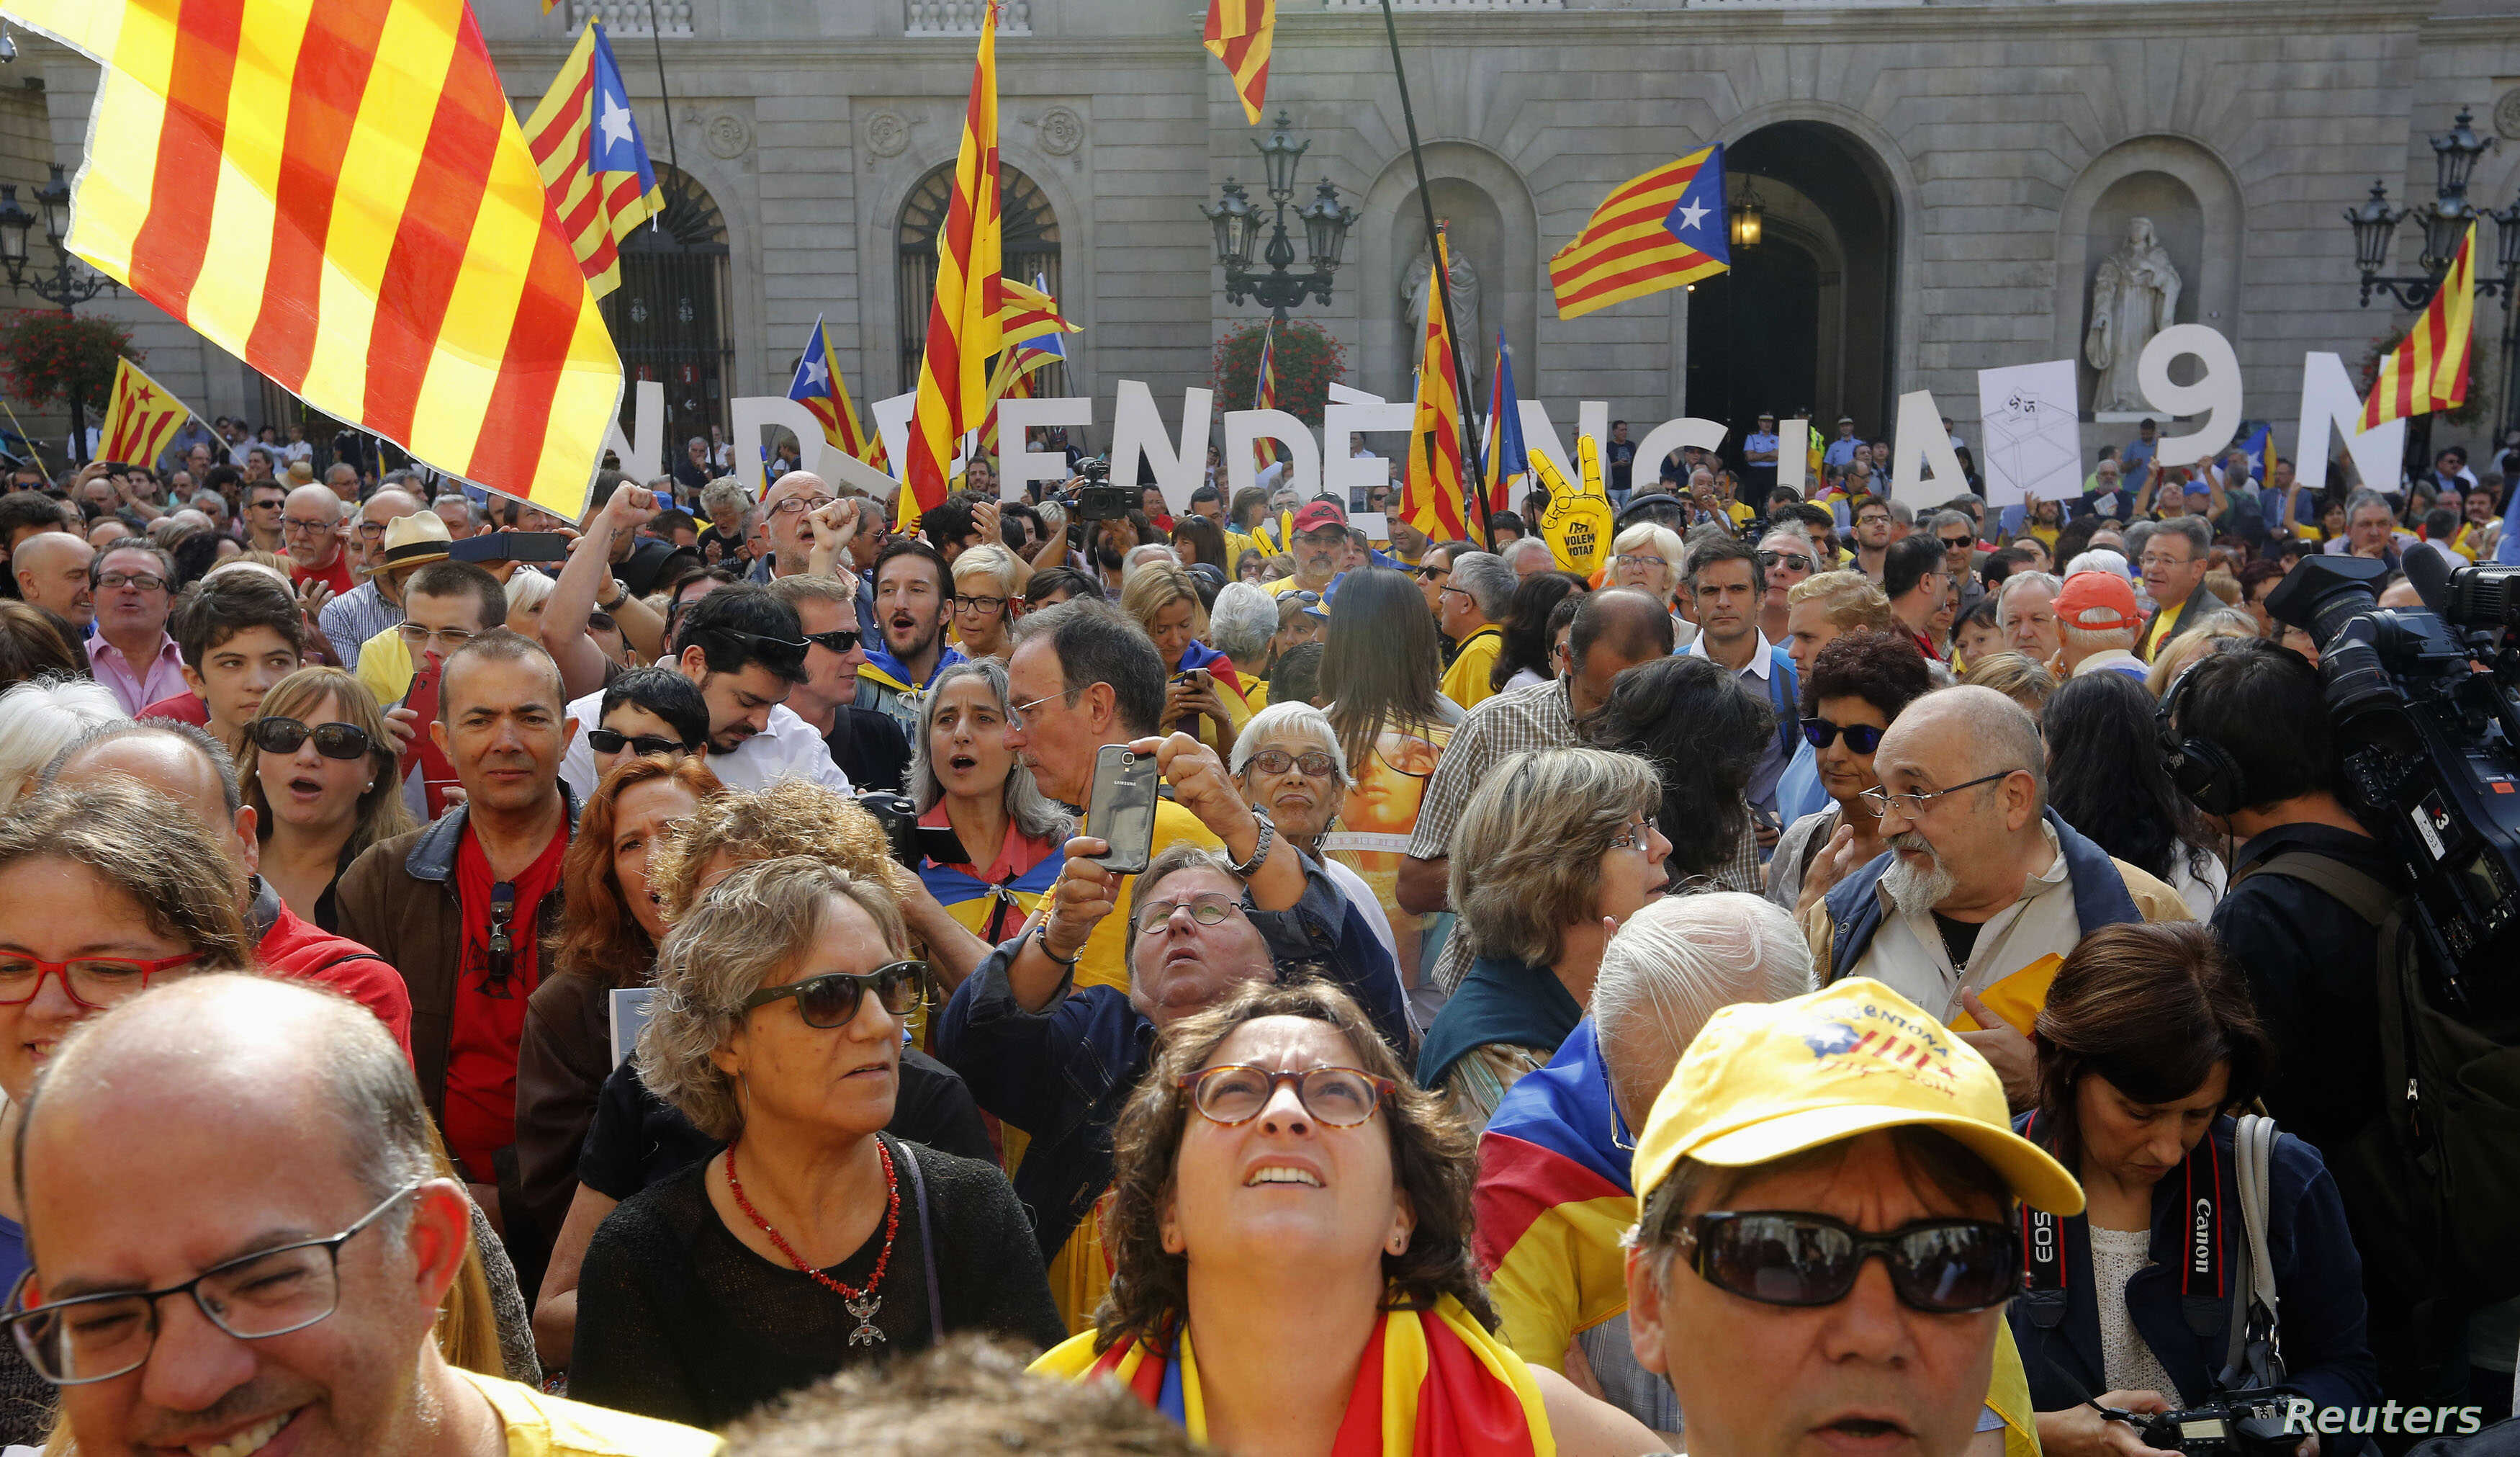 Pro-independence supporters gather in front of the Palau de la Generalitat (Government Palace) before Catalonia's President Artur Mas signs a decree calling for an independence referendum, in Barcelona, Sept. 27, 2014.